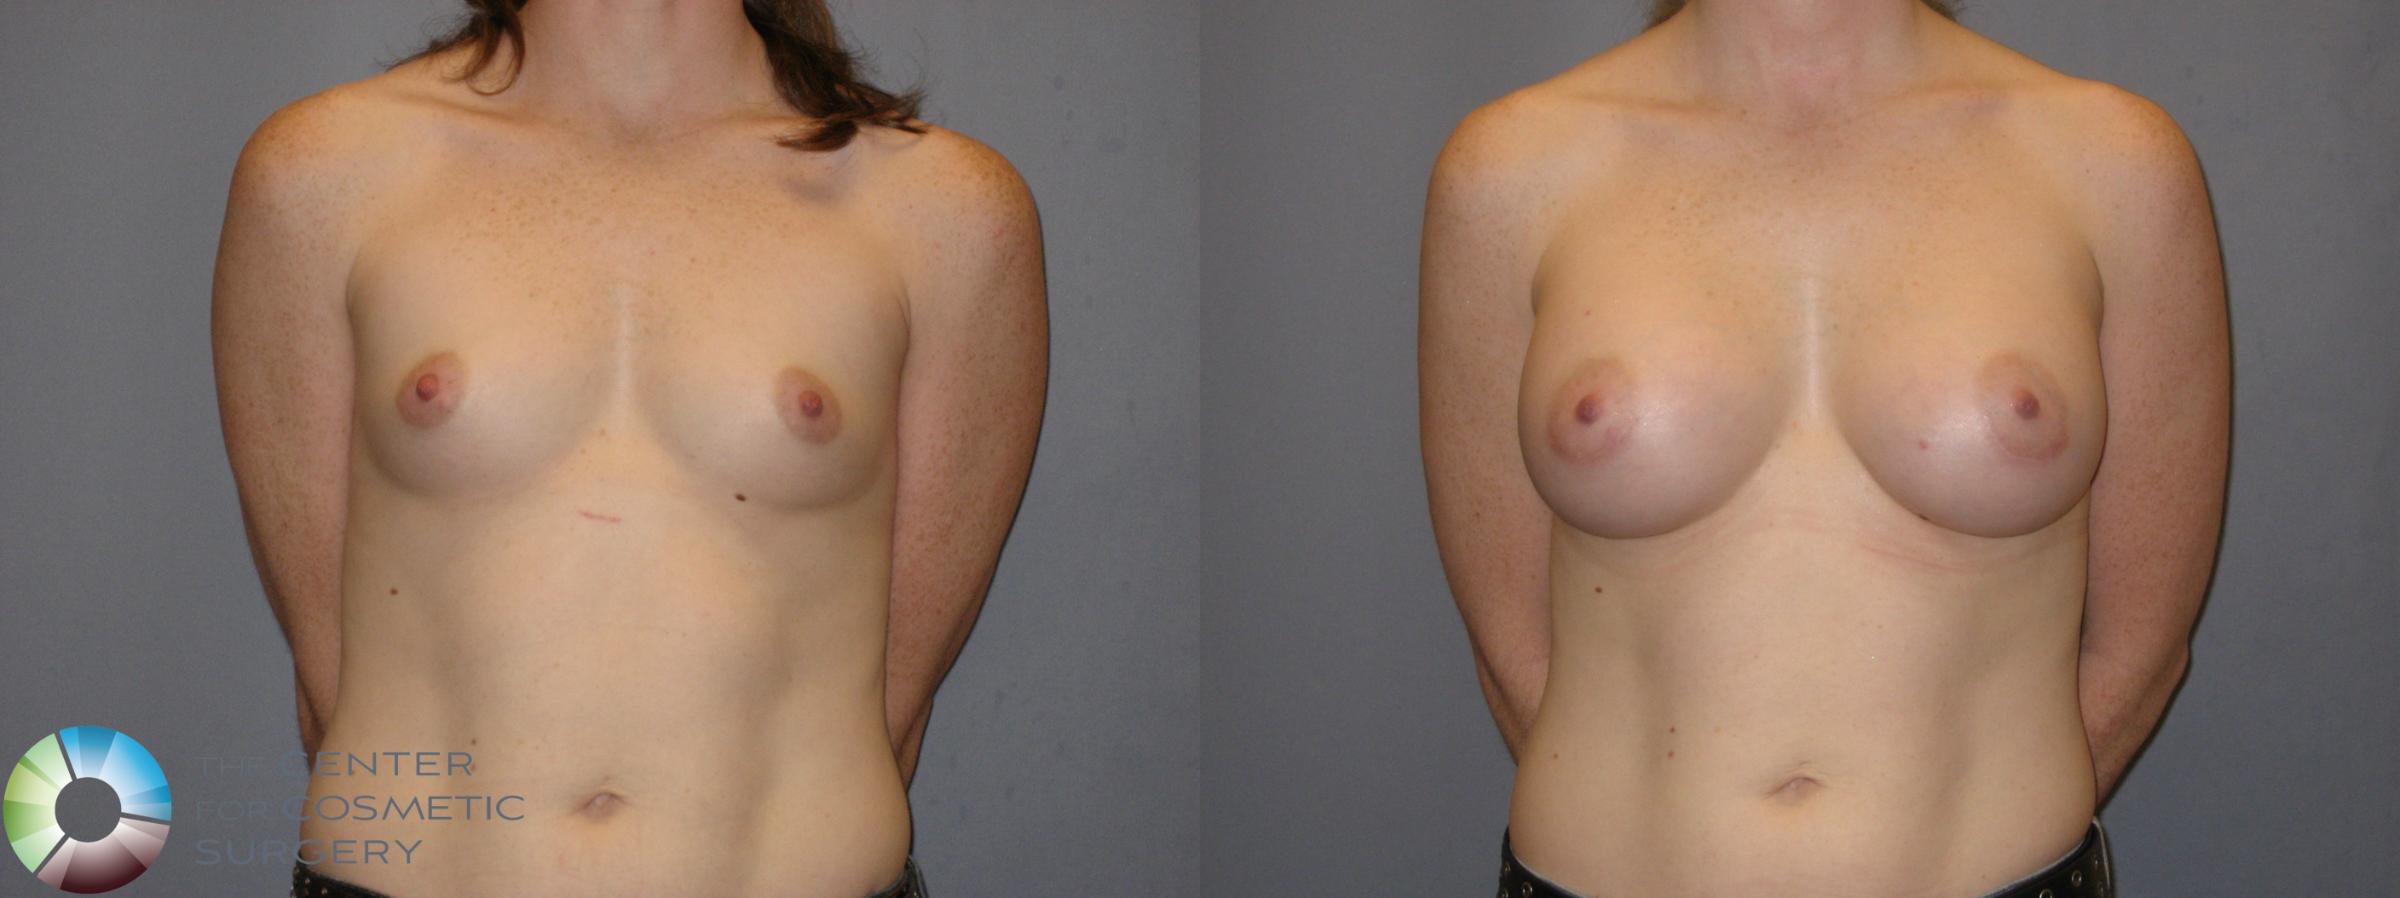 Breast Augmentation Case 121 Before & After View #1 | Golden, CO | The Center for Cosmetic Surgery